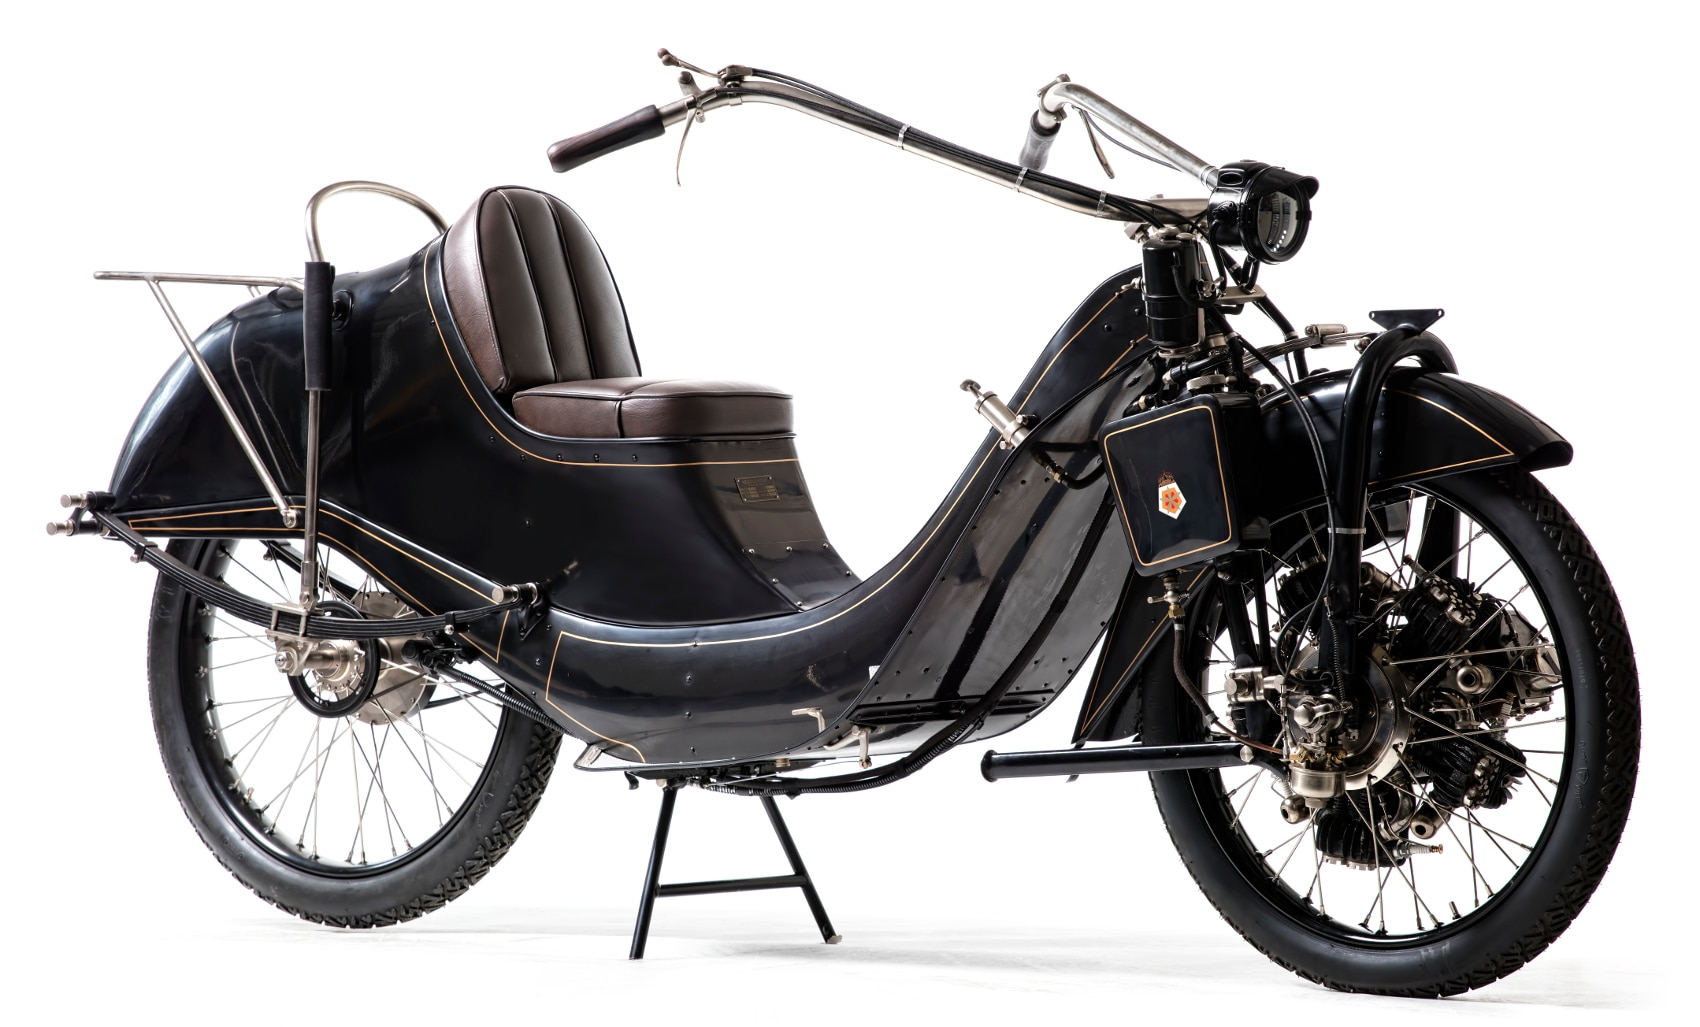 Lot 610 c.1921 Megola 640cc Touring Model